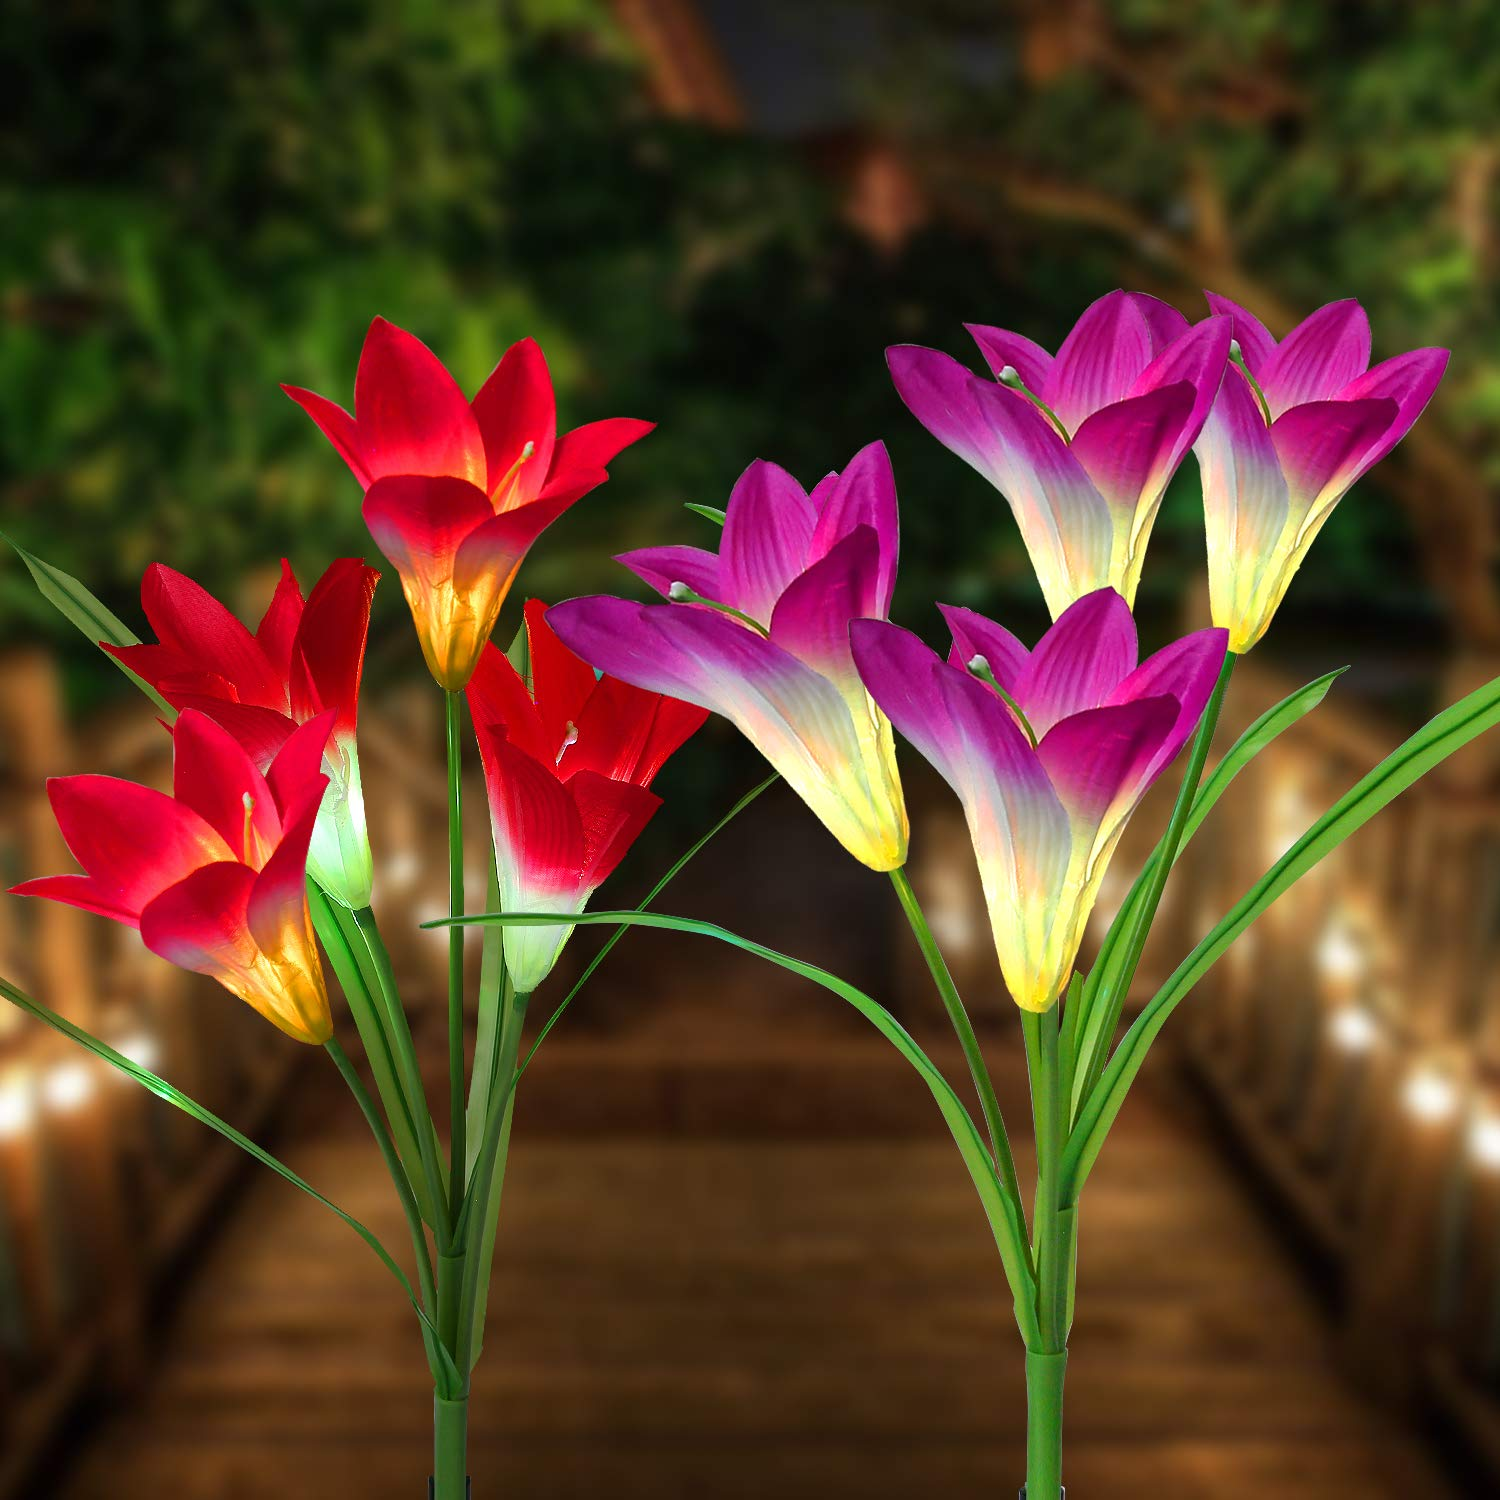 Loren Solar Lights Outdoor - New Upgraded Solar Garden Lights, Multi-Color Changing Lily Solar Flower Lights for Patio,Yard Decoration, Bigger Flower and Wider Solar Panel (2Pack)